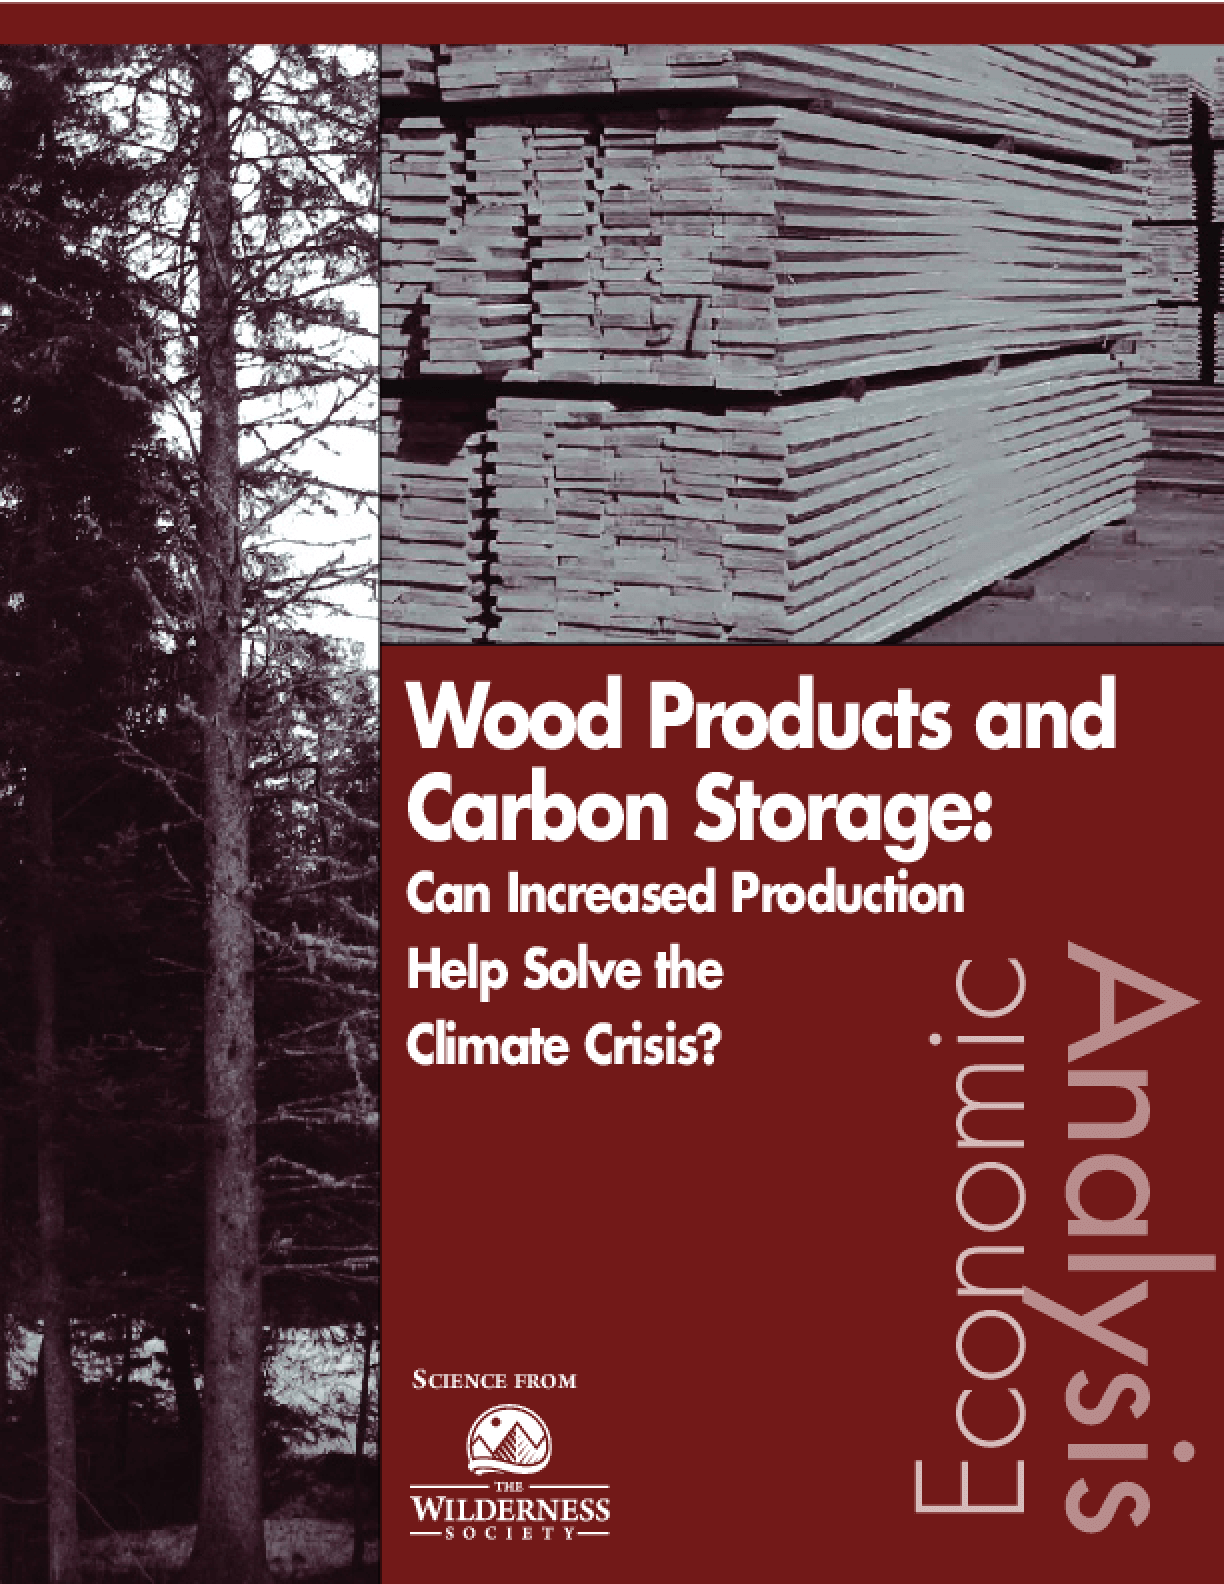 Wood Products and Carbon Storage: Can Increased Production Help Solve the Climate Crisis?